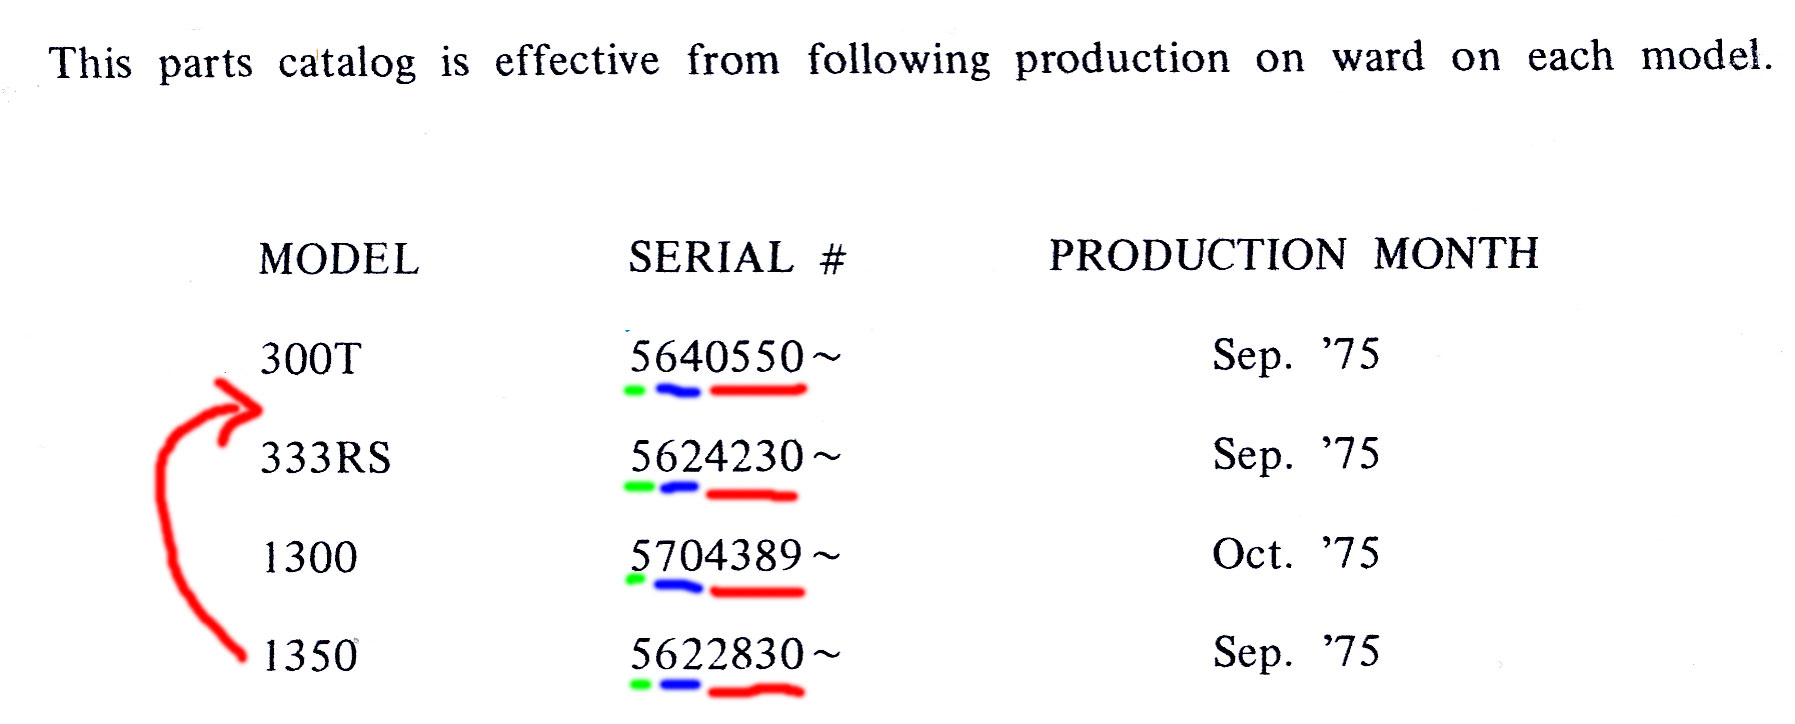 """why would they say that the manual is good for machines produces after these serial numbers, unless they had some sequence to them? Sequentiality here only makes sense if we assume the numbers underlined in blue are a """"Style Code"""", and even then it falls apart: 0550 is too low, and the model 1350 and 333RS would share the same style code."""